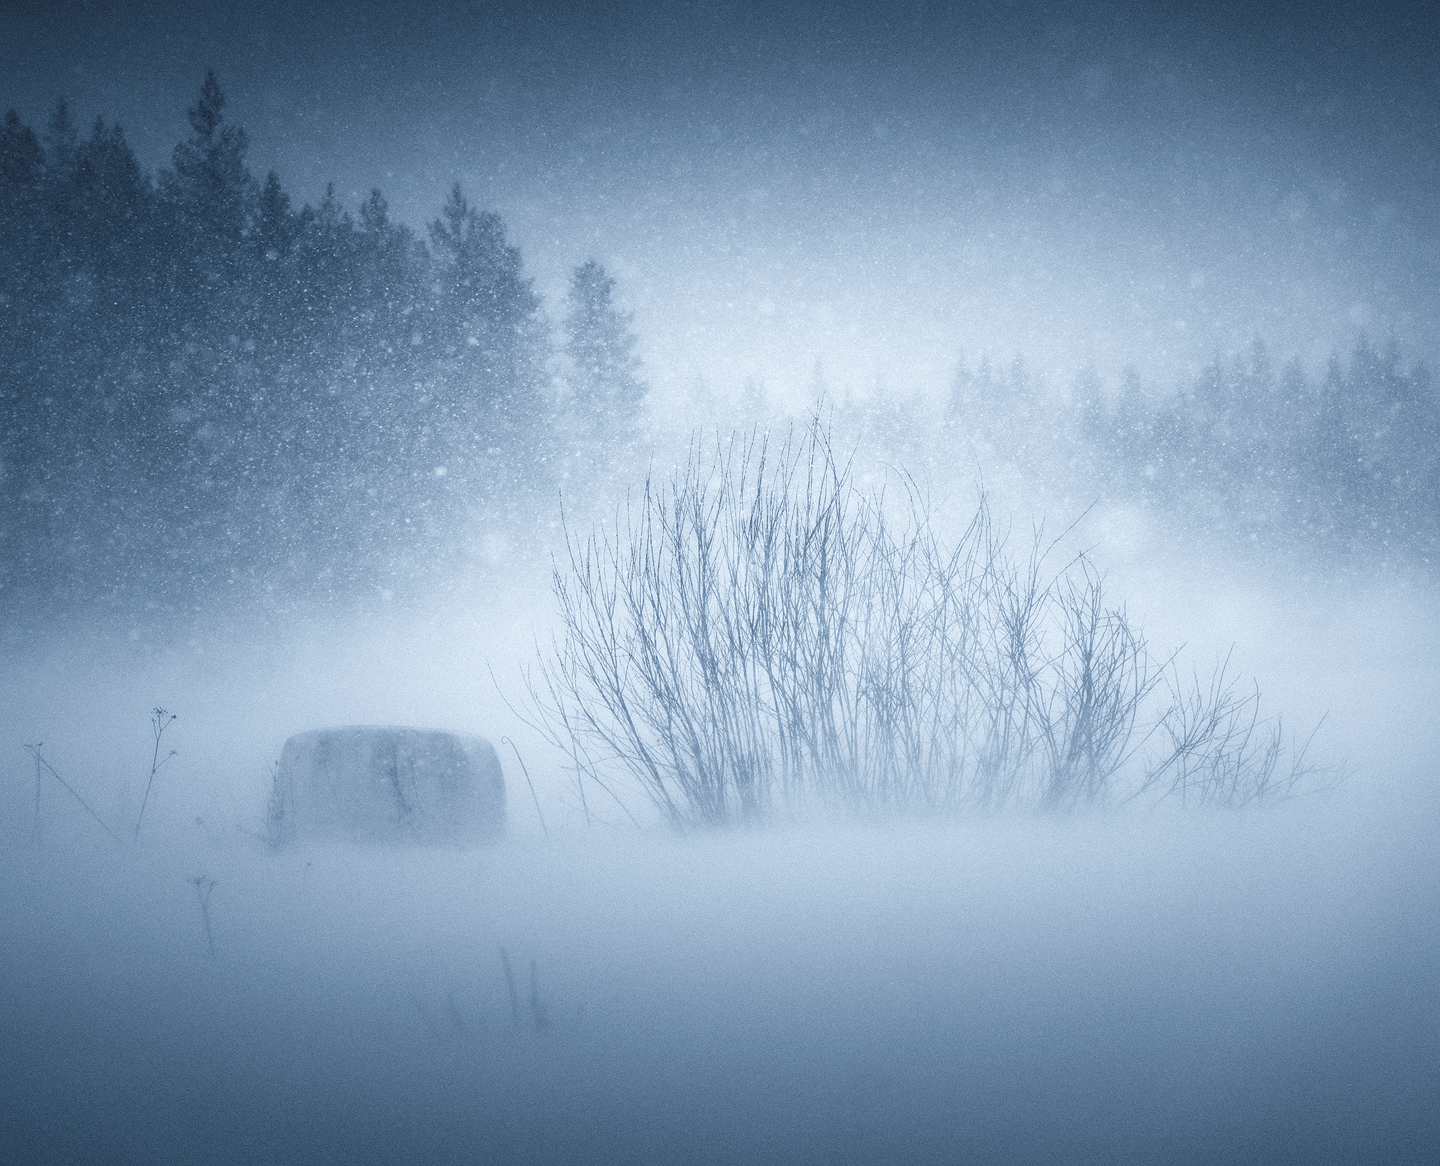 In The Snowstorm